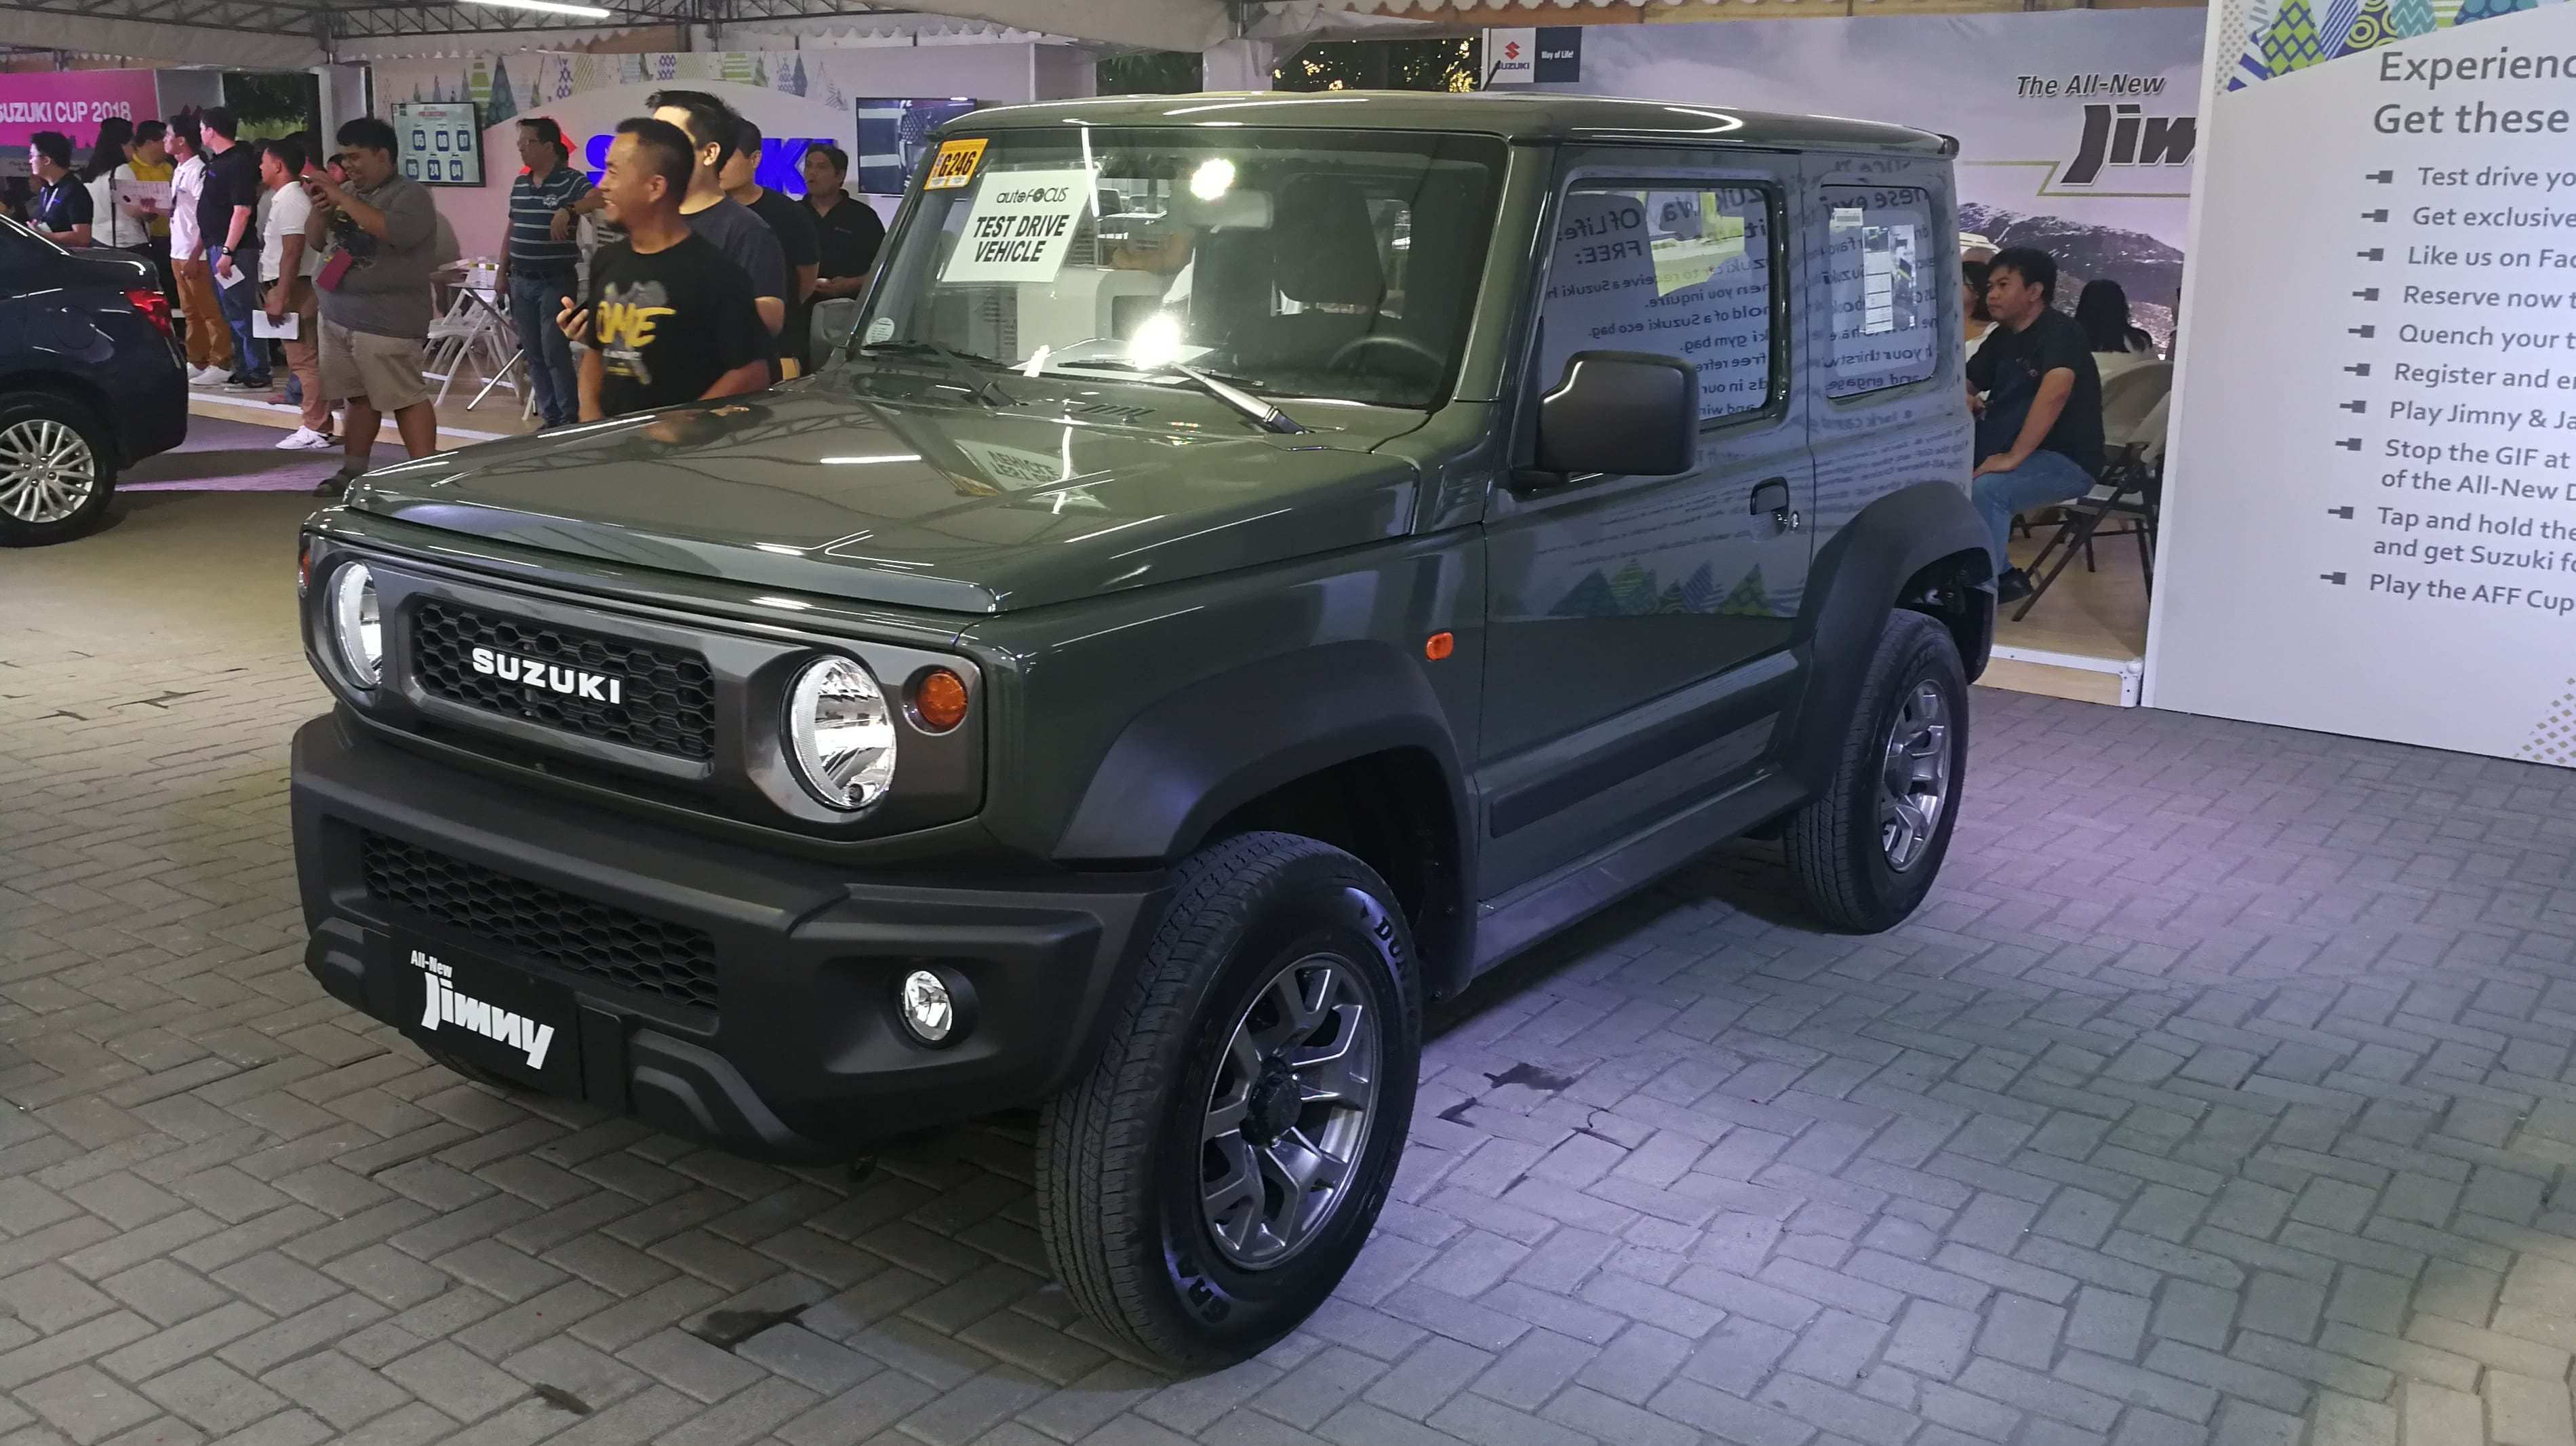 64 New 2019 Suzuki Jimny Model Photos